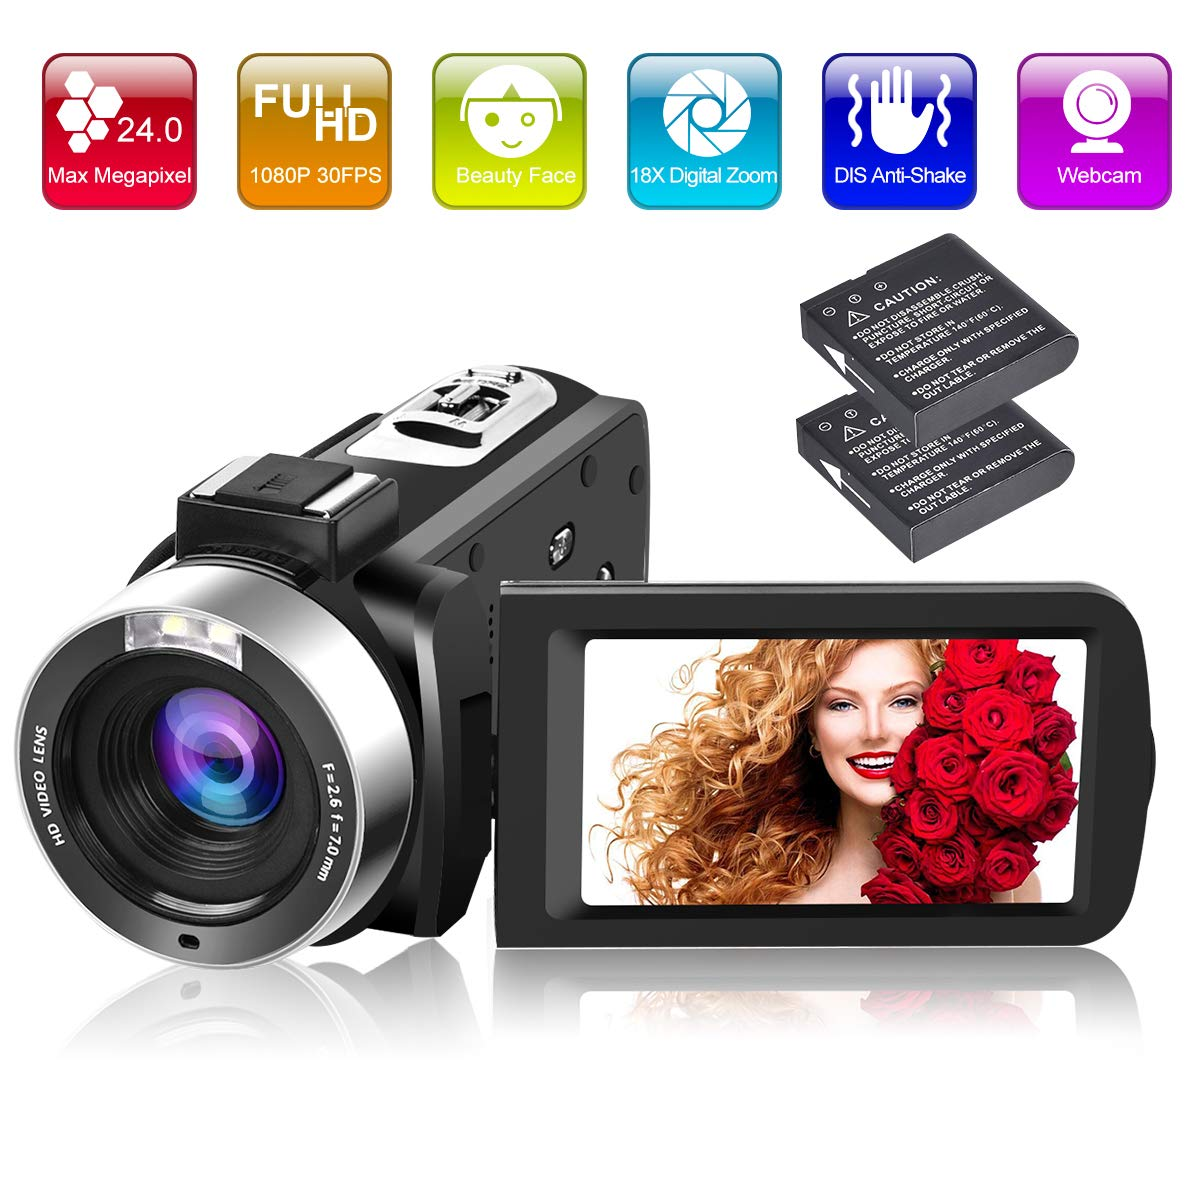 Camcorder Video Camera Full HD 1080P 30FPS 24.0MP 18X Digital Zoom Vlogging Camera with 3 Inch Screen 270 Degree Rotation Screen (V10-PP) by Longin